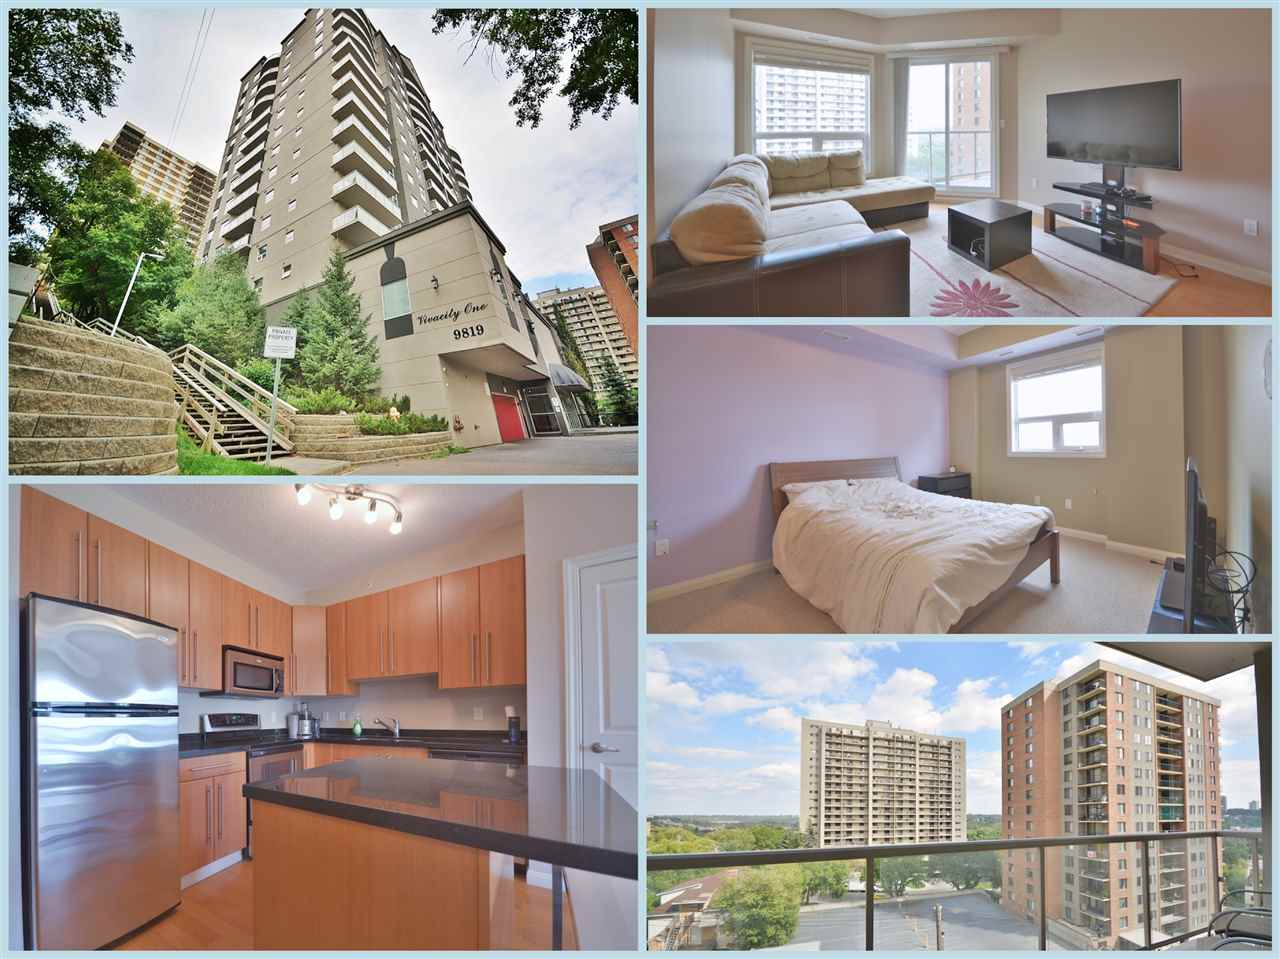 Main Photo: 202 9819 104 Street in Edmonton: Zone 12 Condo for sale : MLS® # E4079056